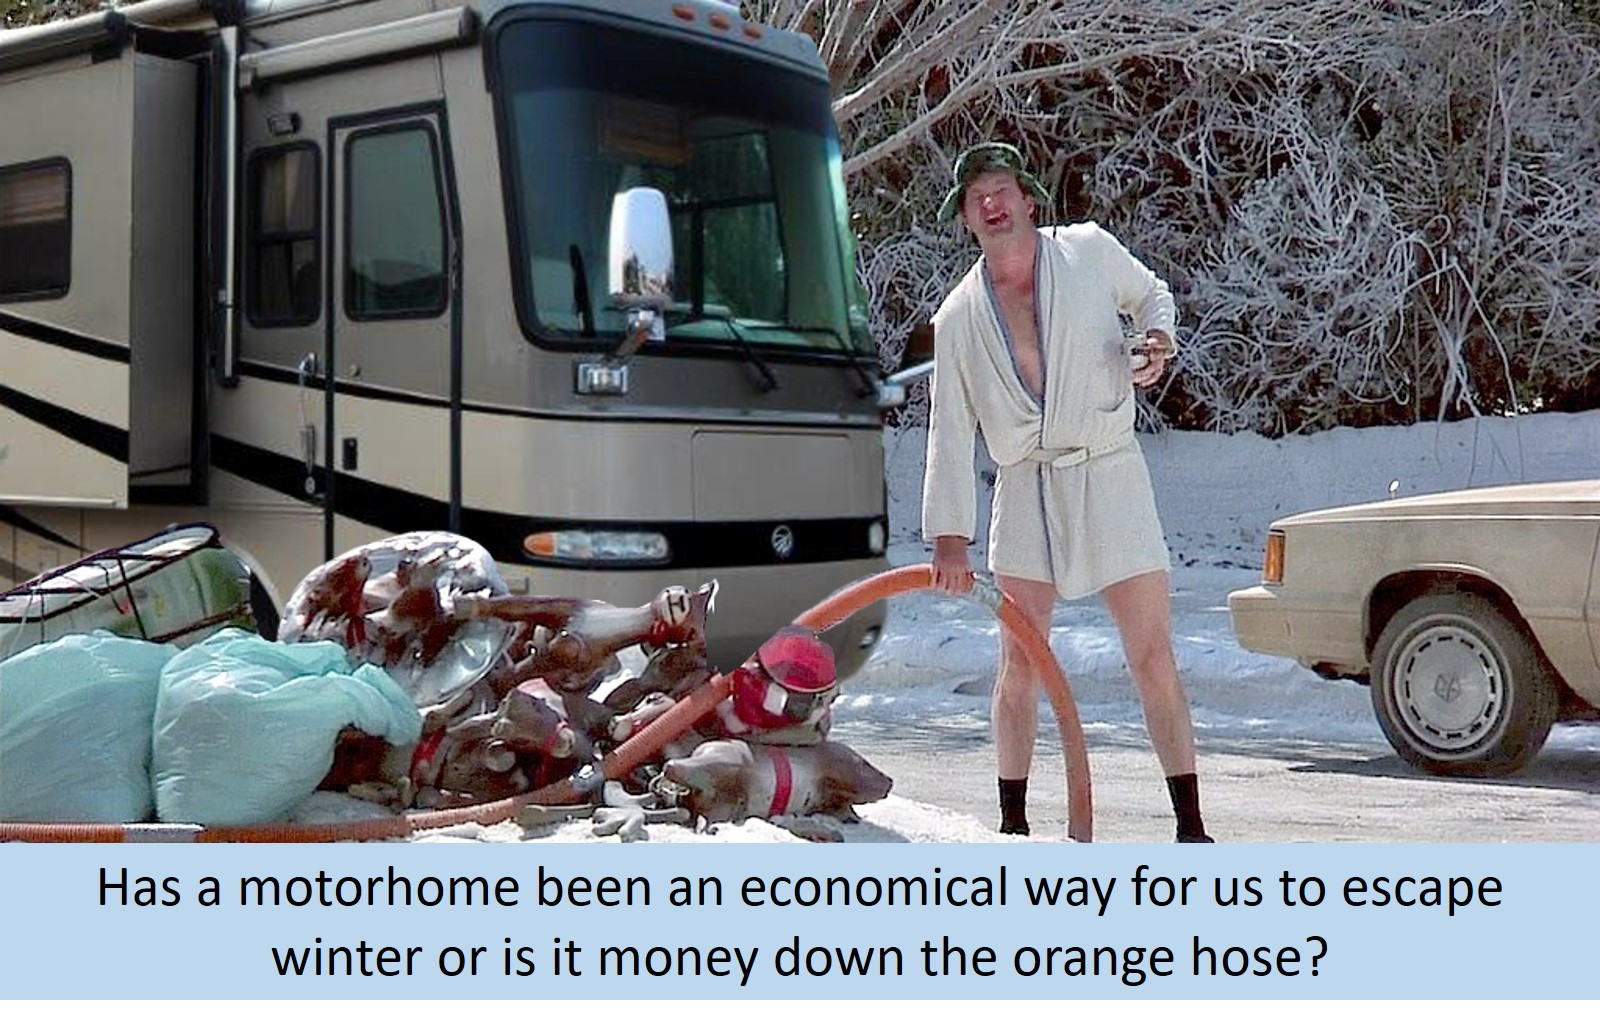 Christmas Vacation Rv.Is Our Motorhome A Money Saver Or Sewer Physician Finance